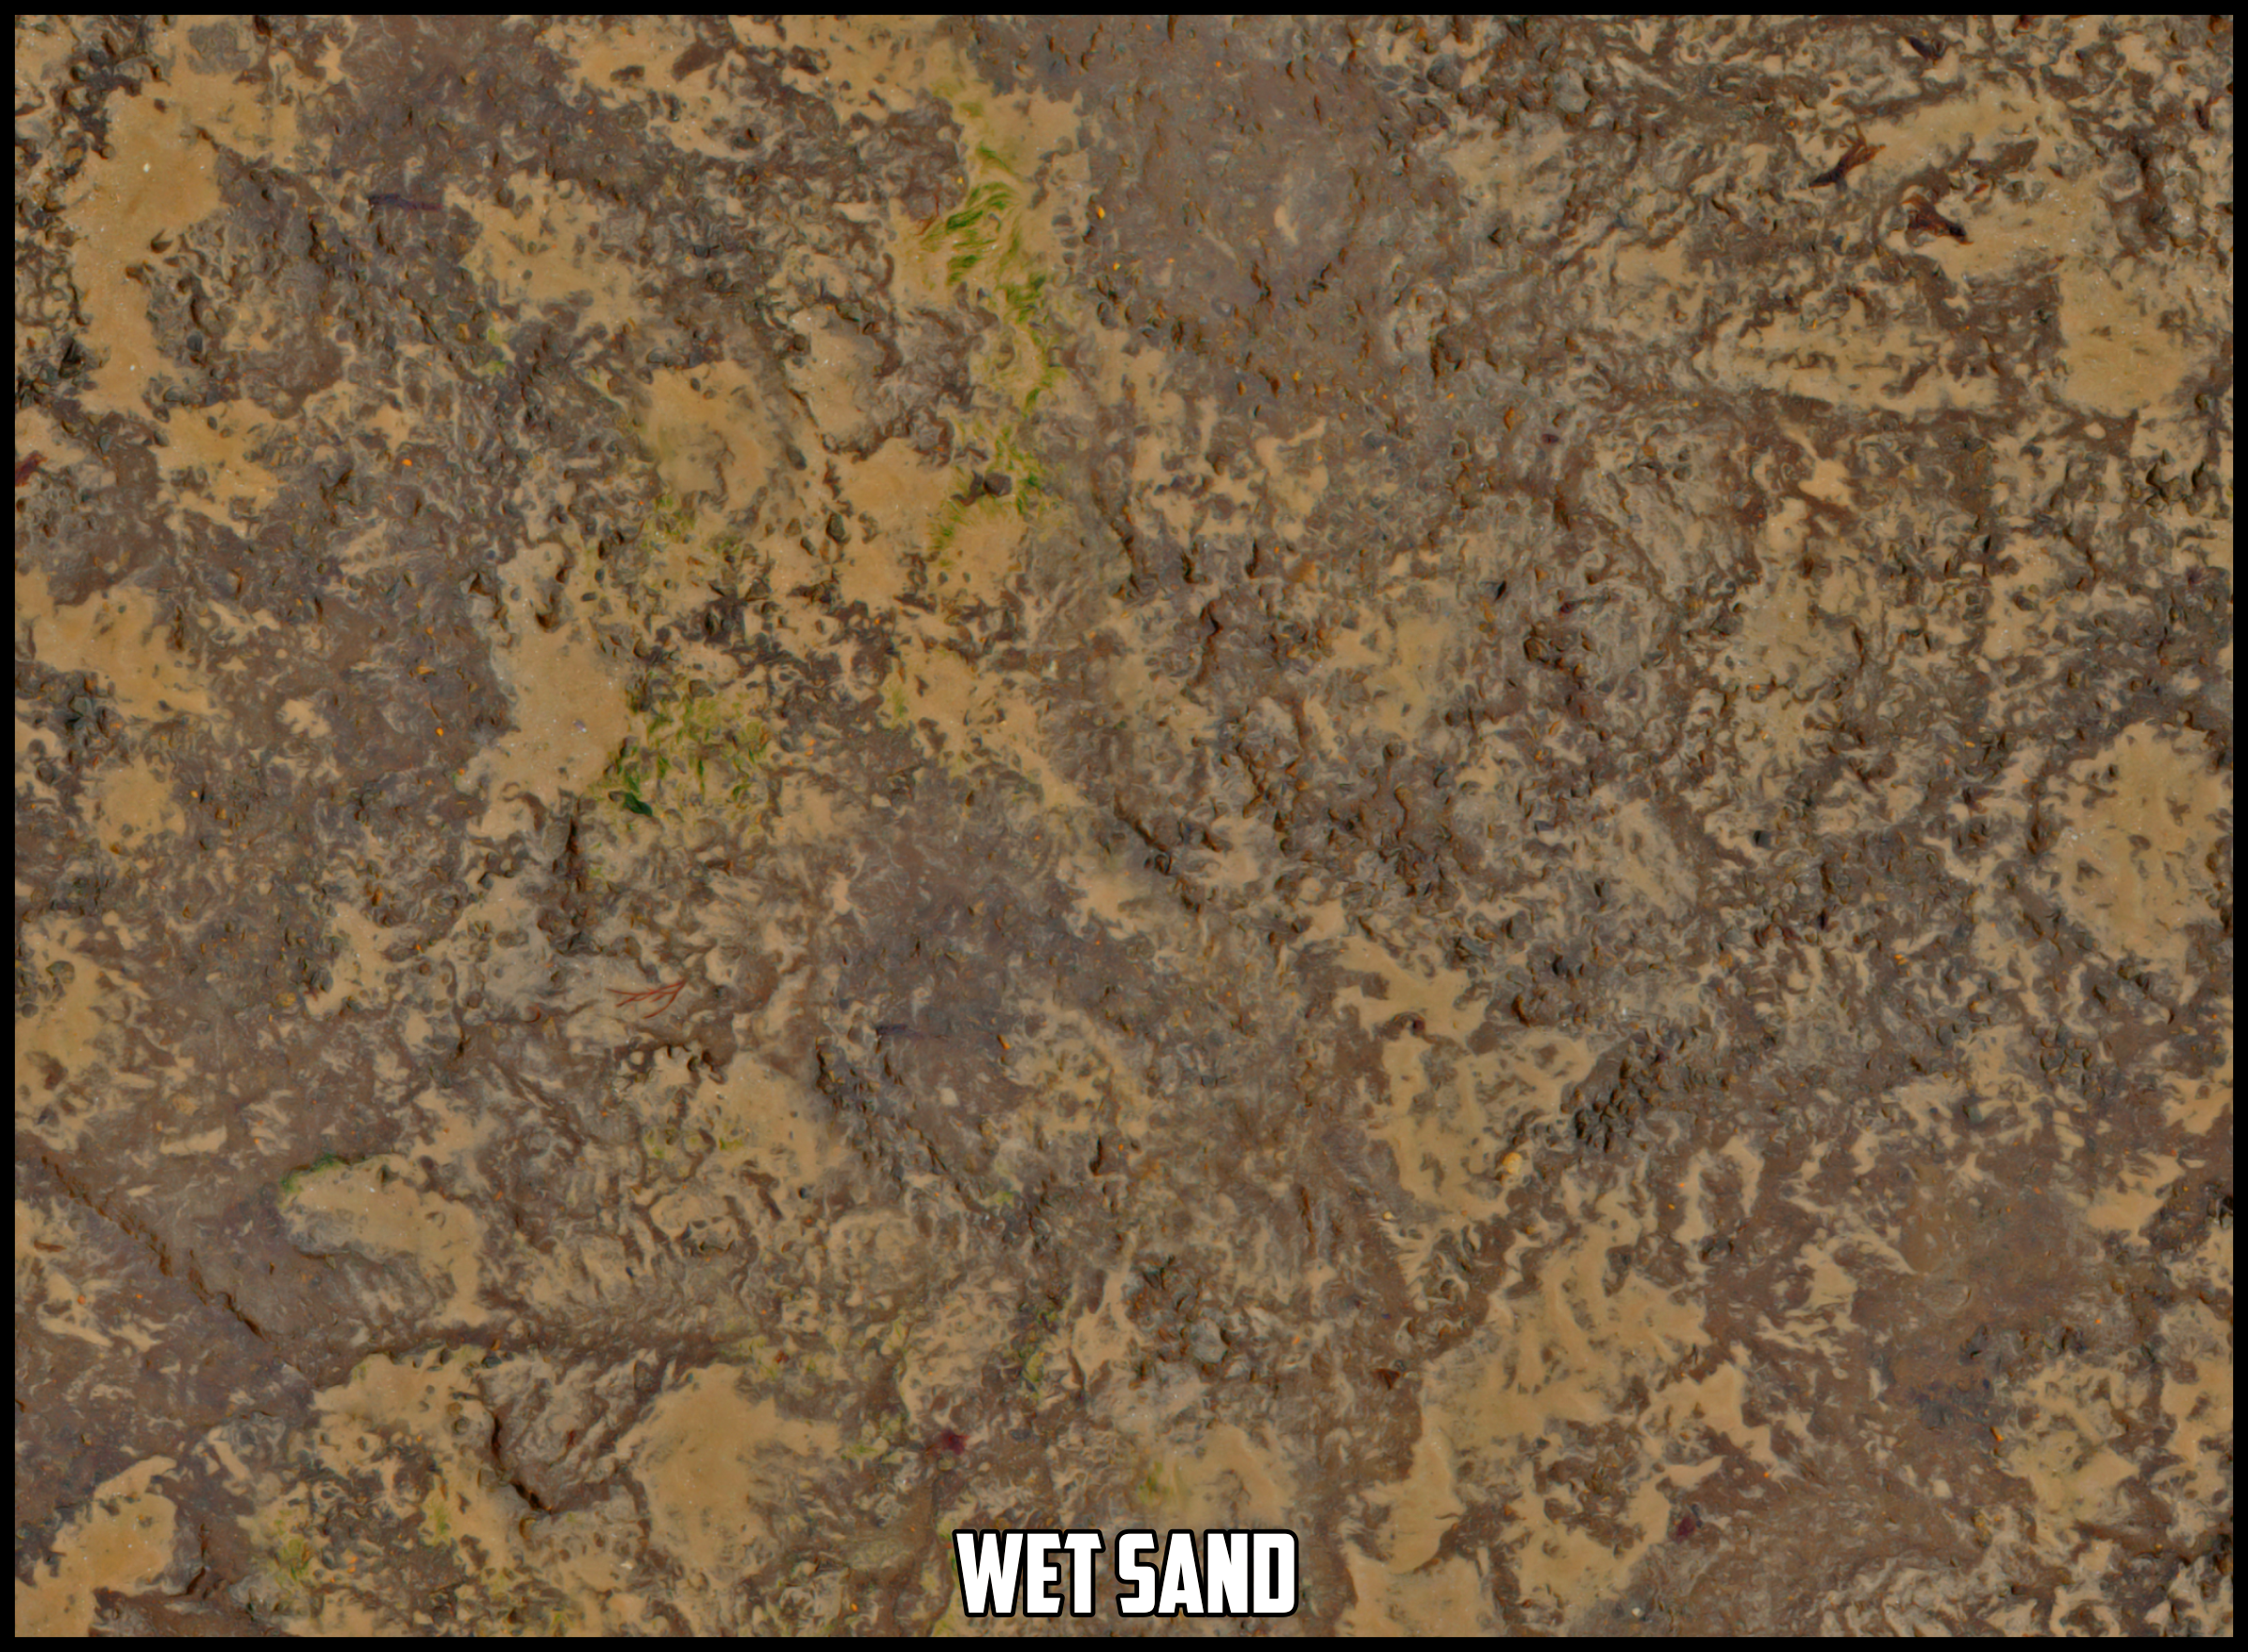 texture-wet-sand-example.png